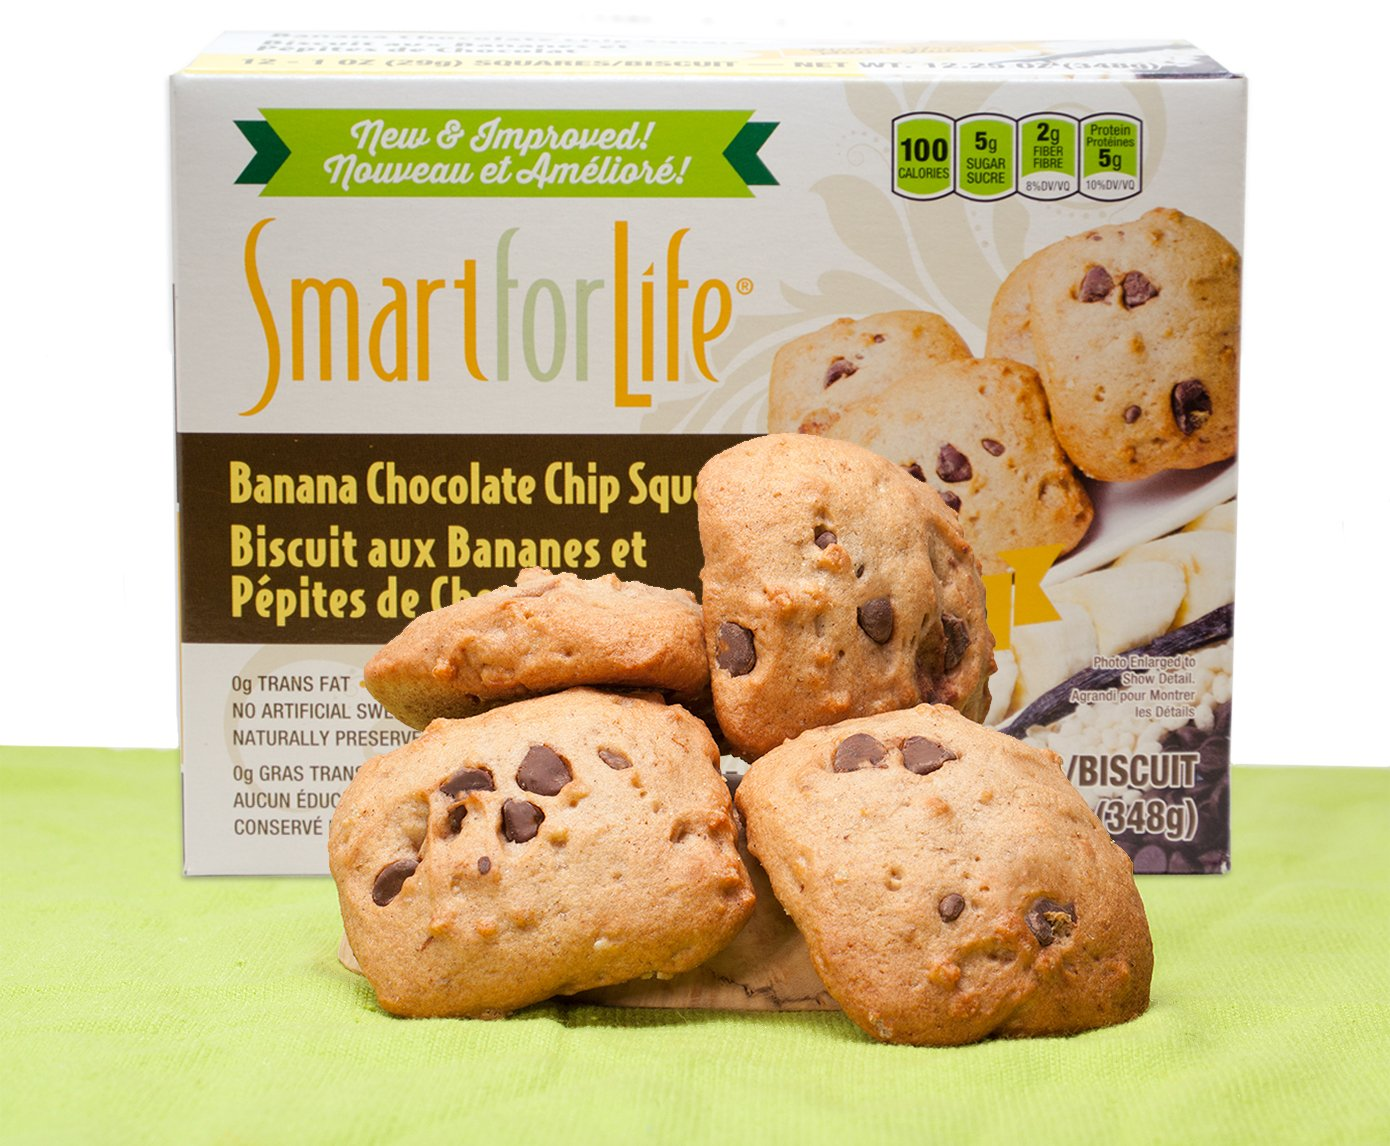 Smart For Life Banana Chocolate Chip Granola Squares, 12-Count by Smart for Life (Image #3)